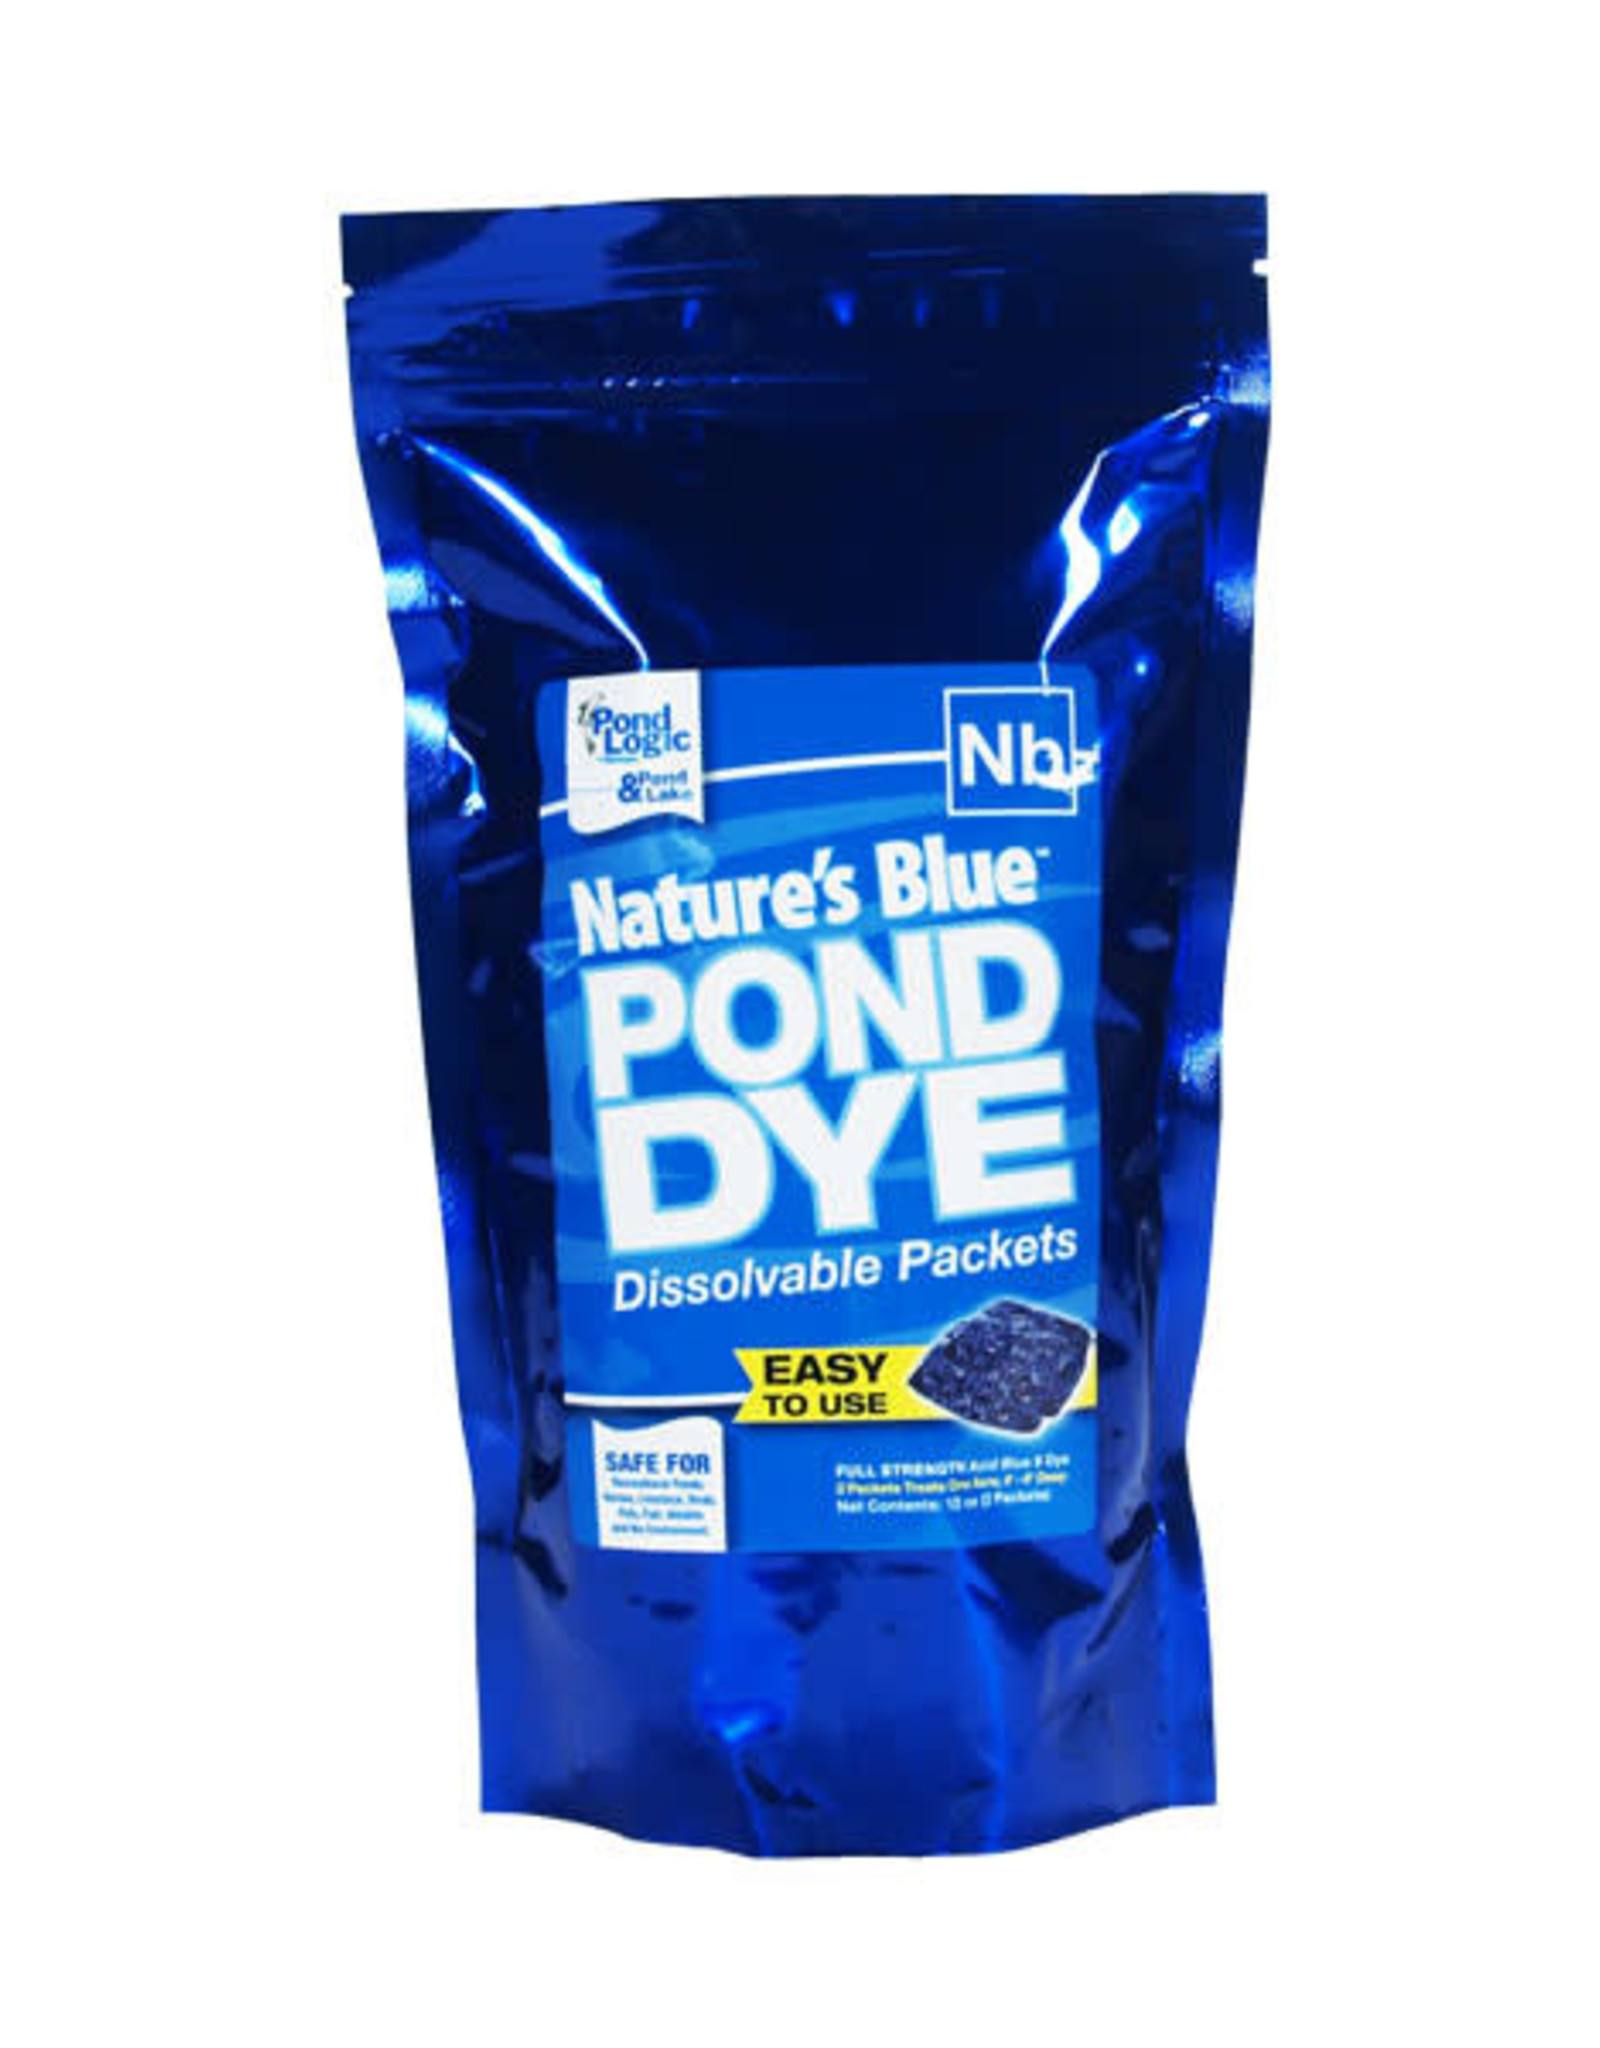 POND LOGIC & POND LAKE BLUE POND DYE WSP 2 PK